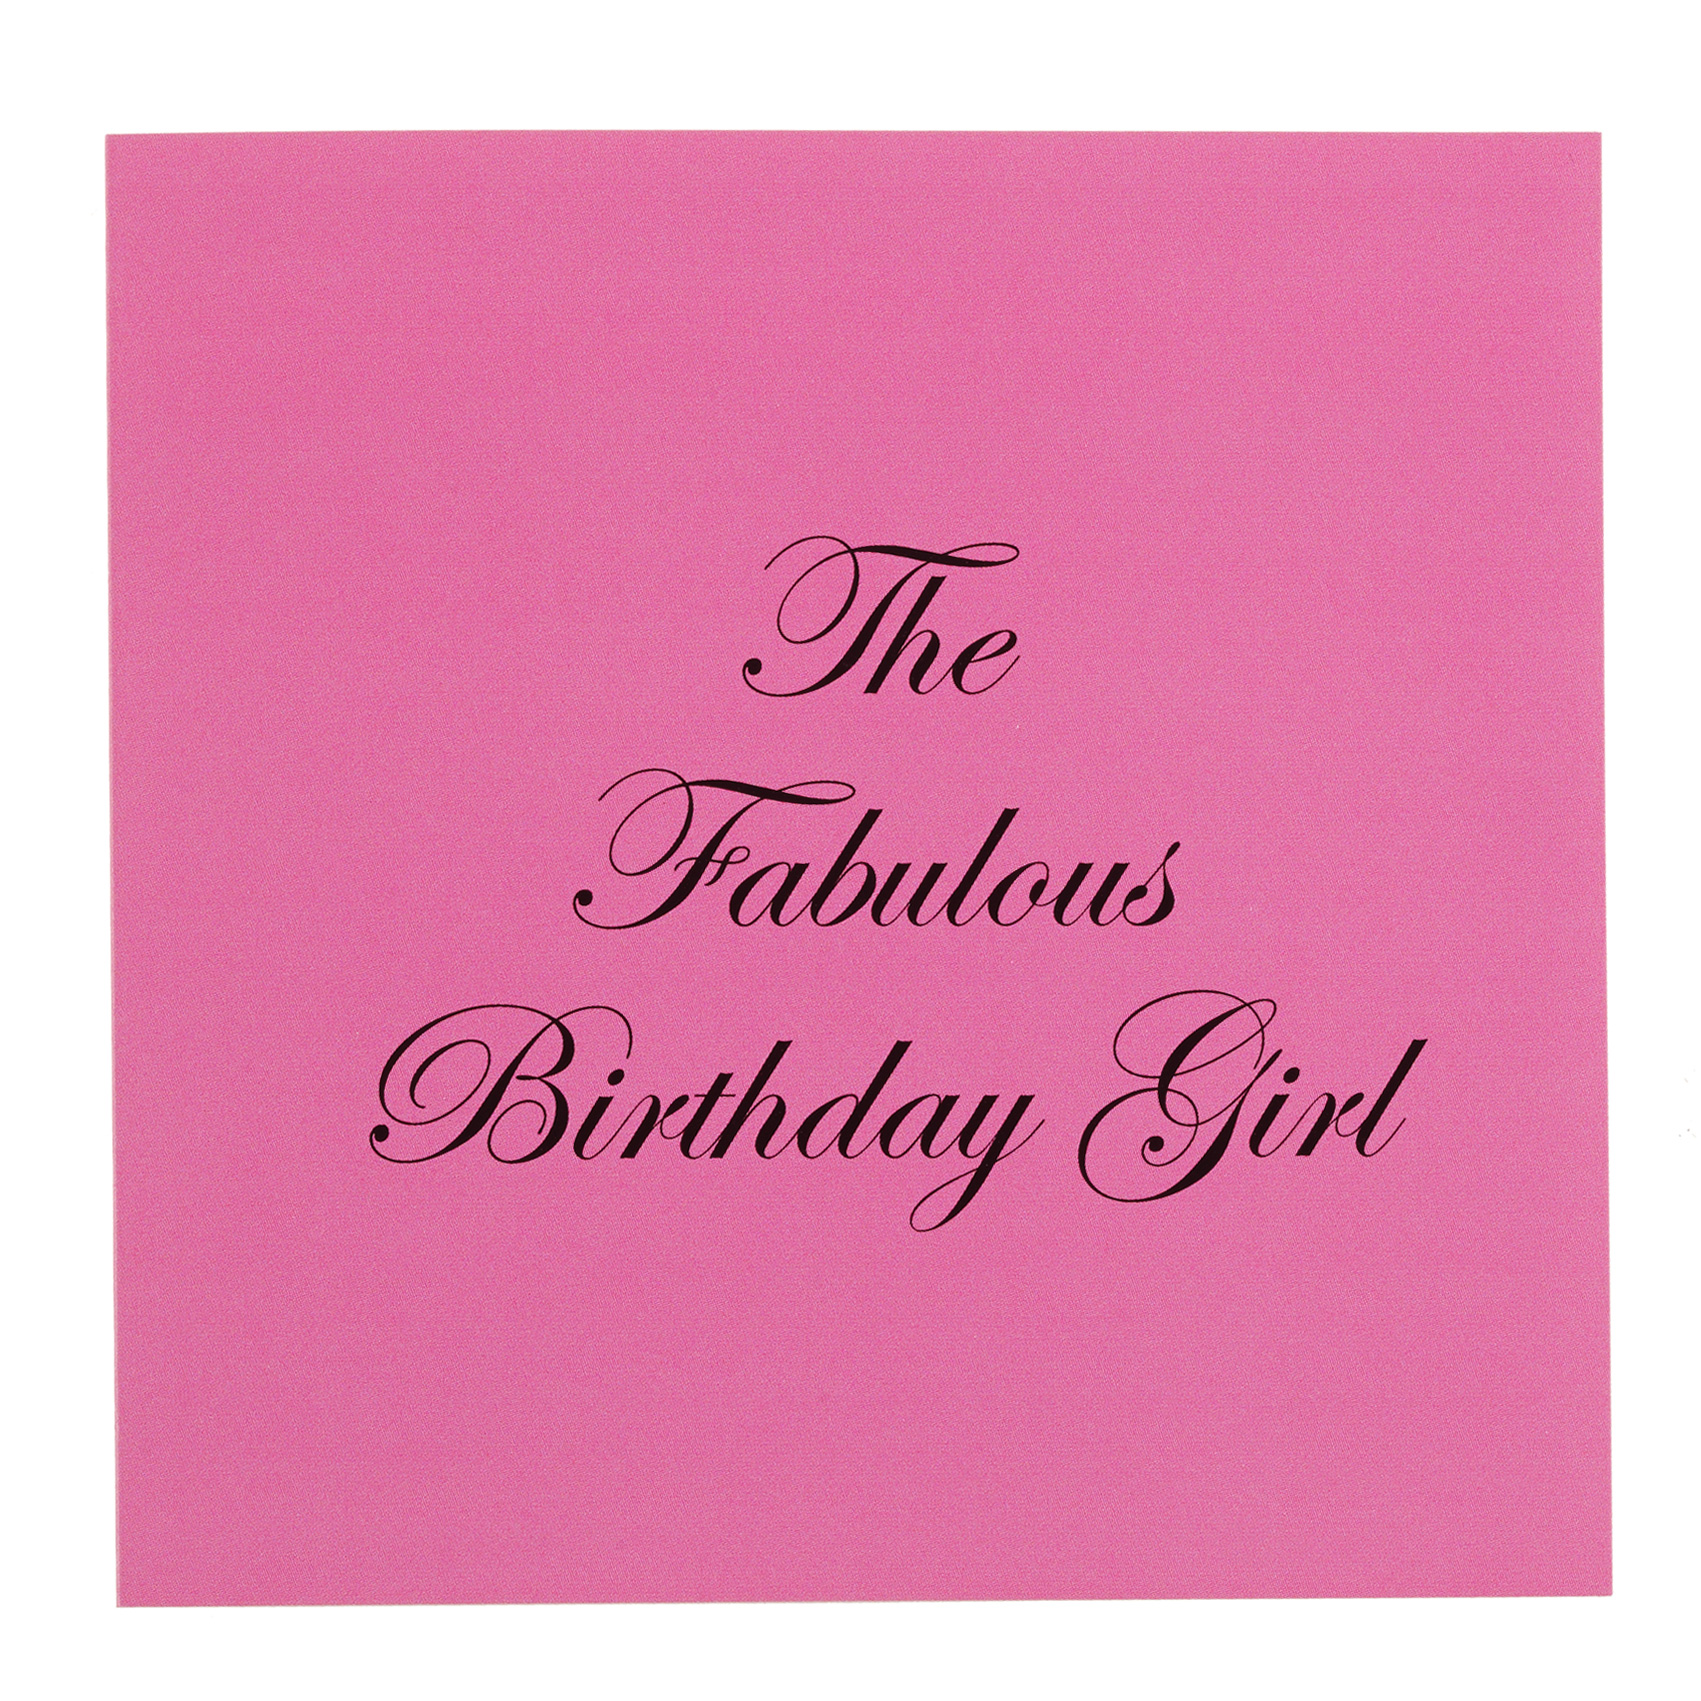 Relieving 818780 Oliver Bonas Gift Birthday Girl Card R8 Happy Birthday Happy Birthday Gif gifts Happy Birthday Fabulous